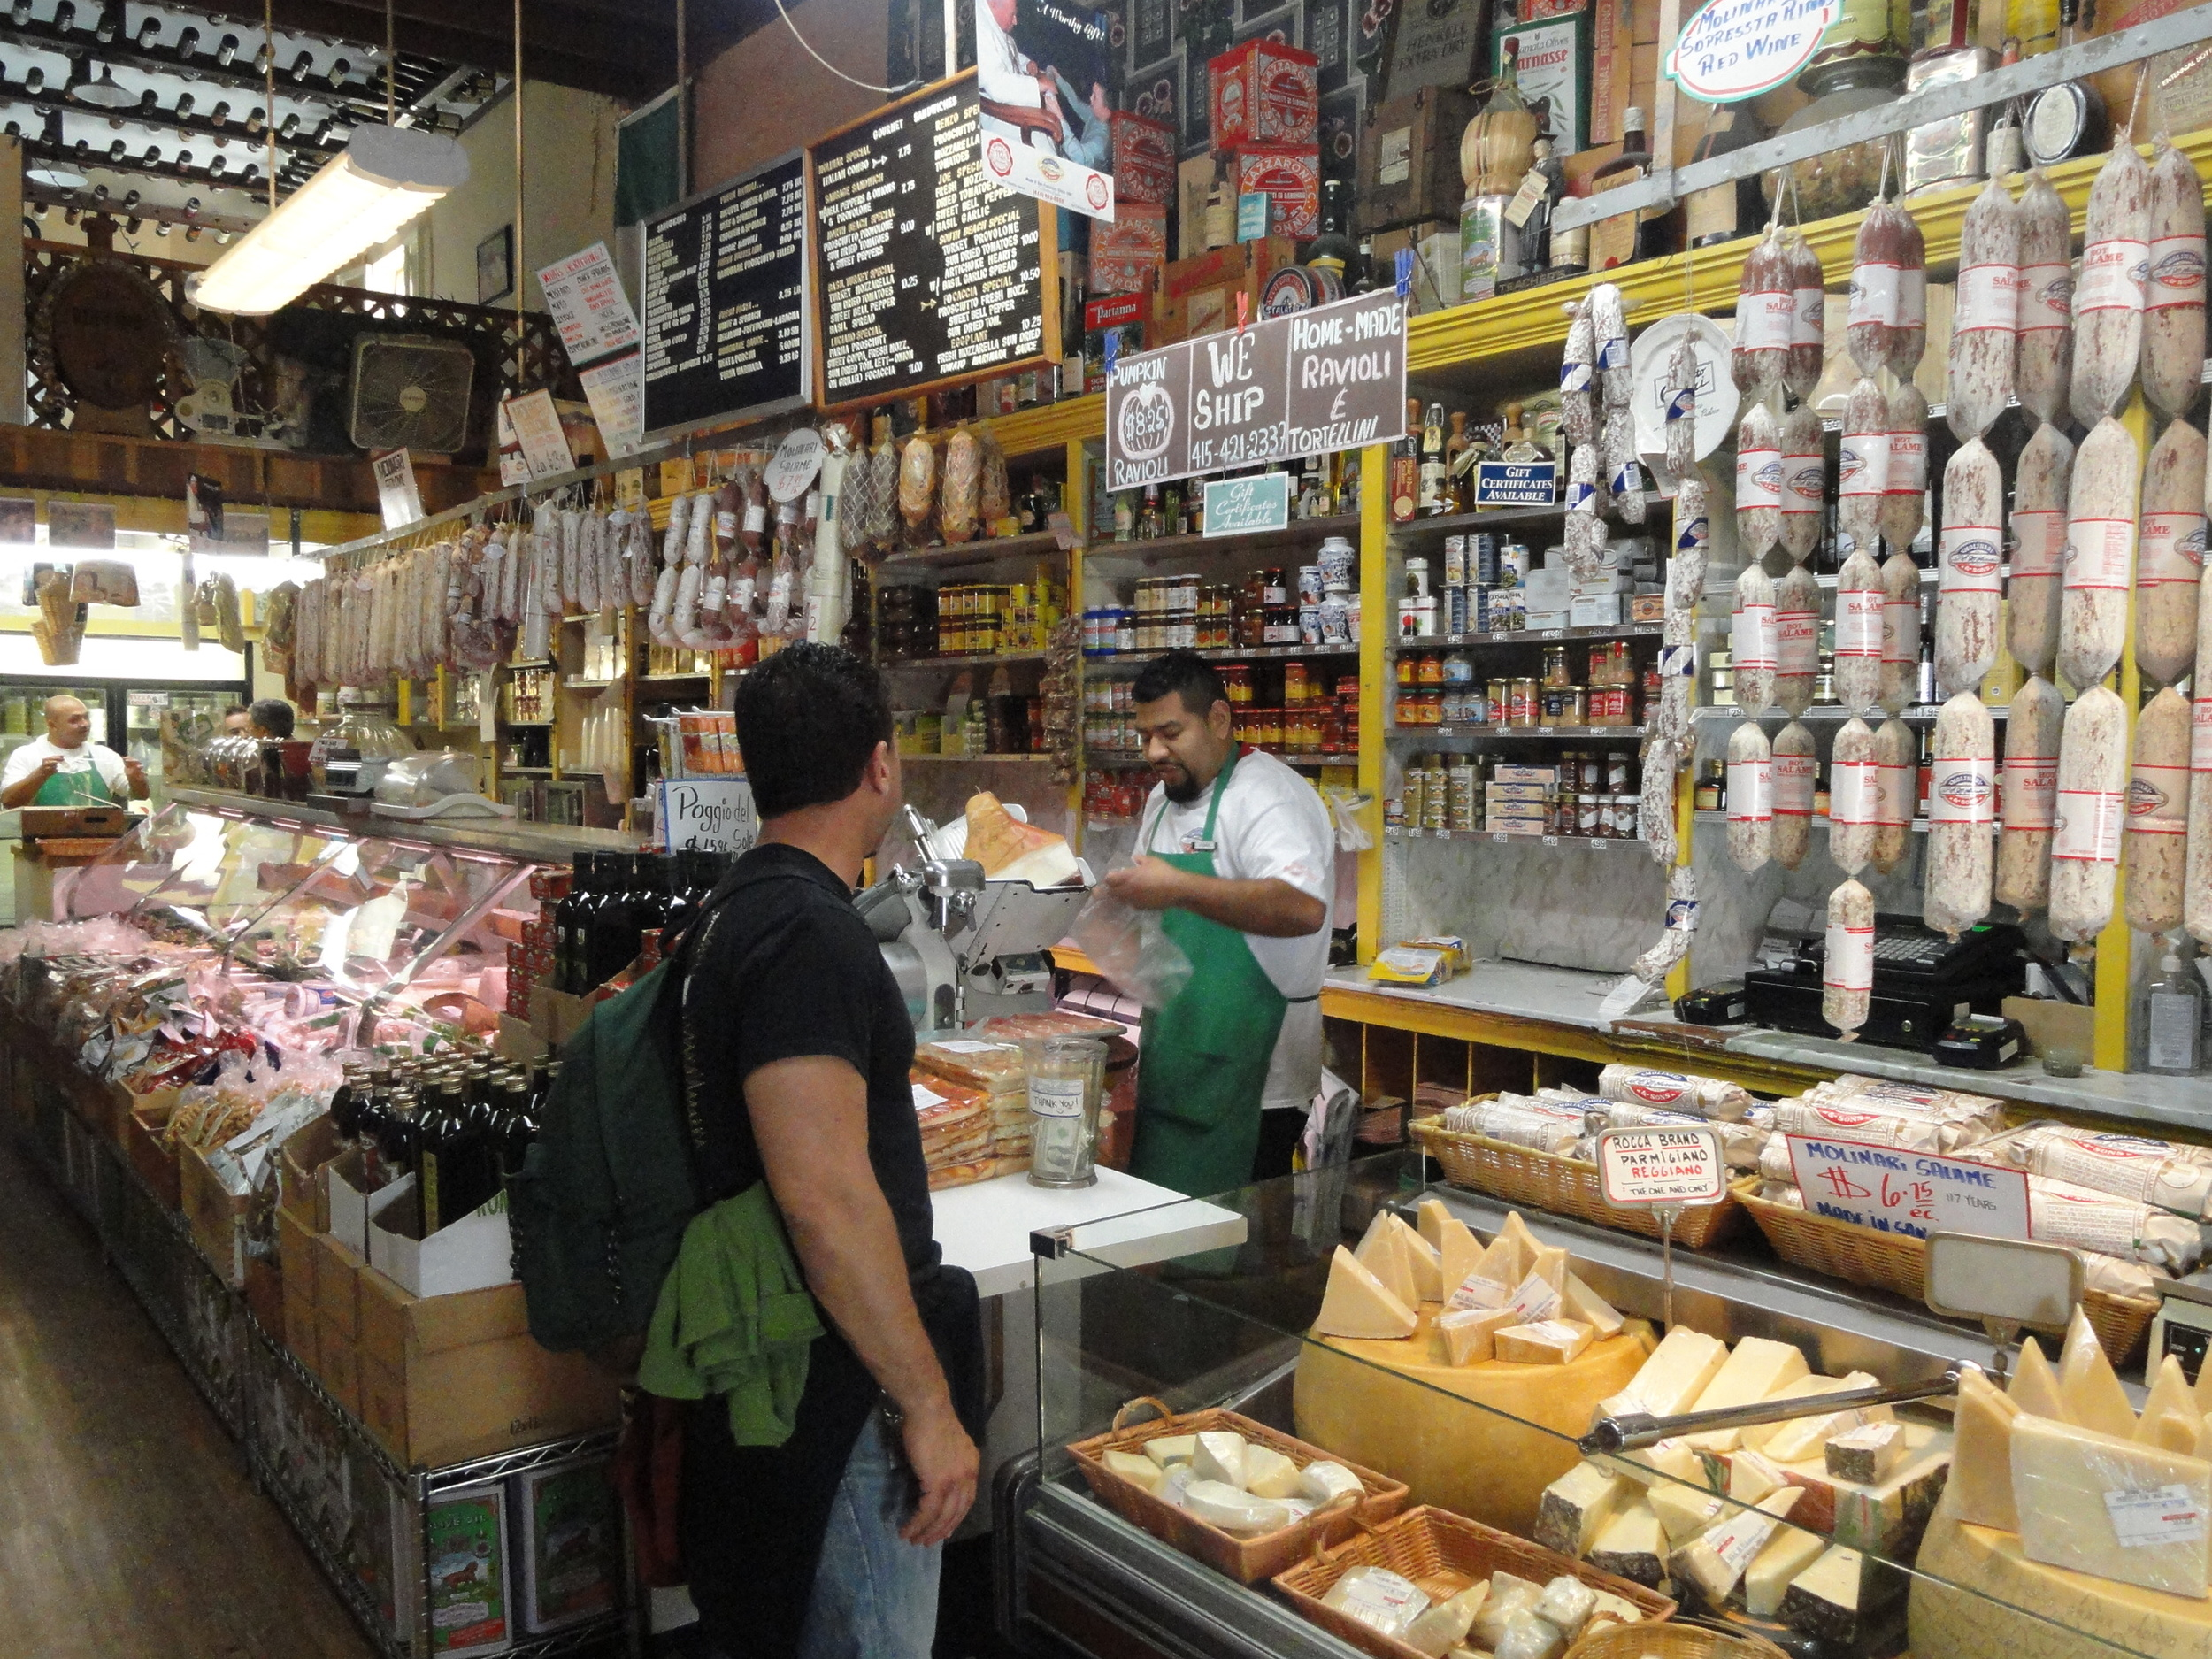 Molinari Delicatessen is an old-school Italian deli offering artisanal meats, cheeses and breads.